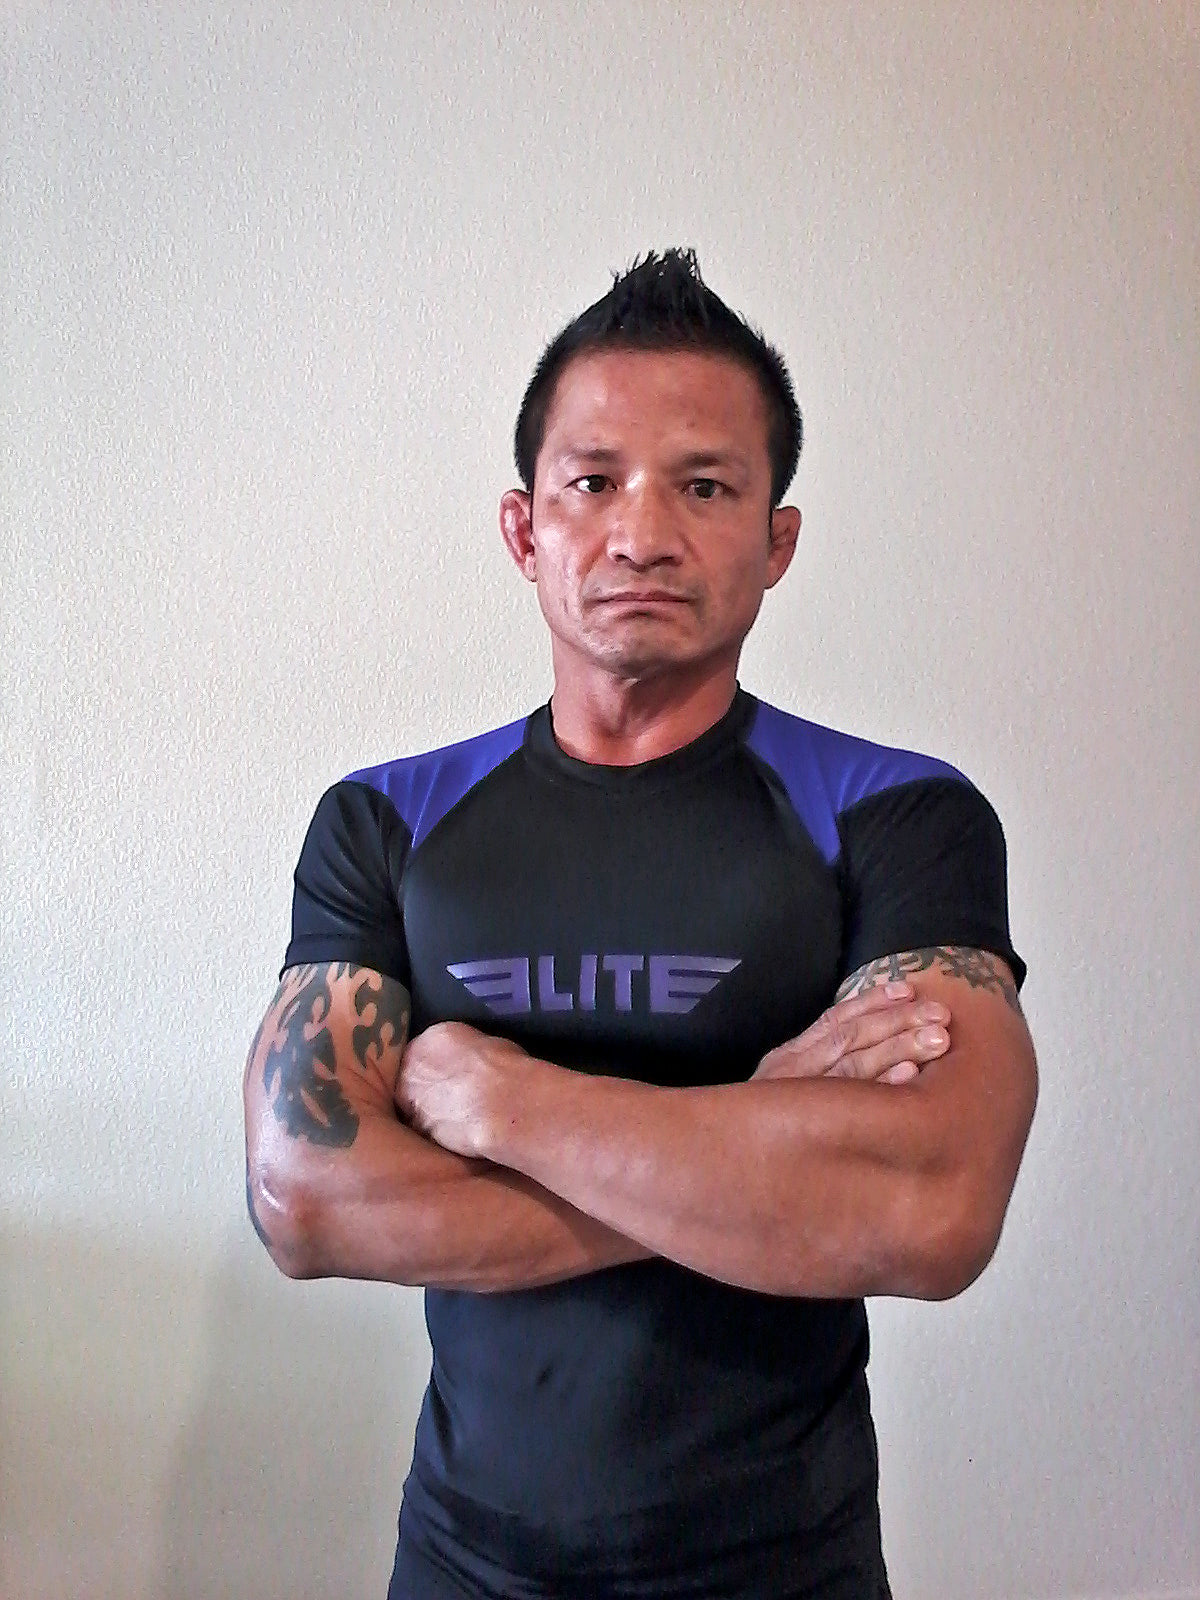 Elite Sports Team Elite Bjj Fighter Jet Lee  Image8